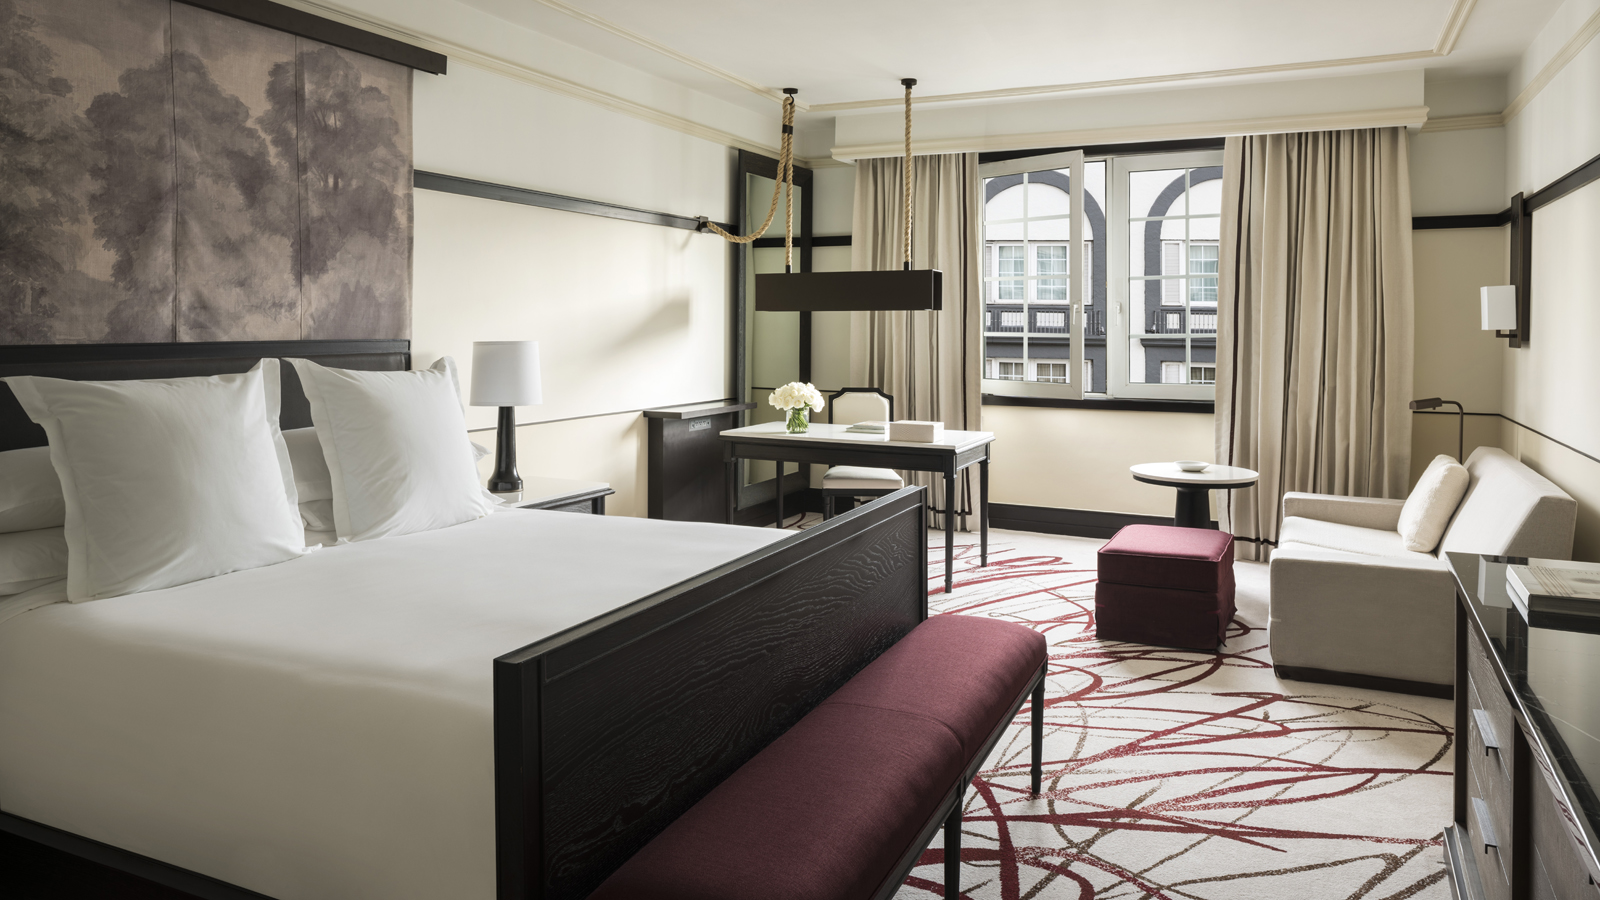 Mexico City Luxury Hotel Packages Offers Four Seasons Mexico City